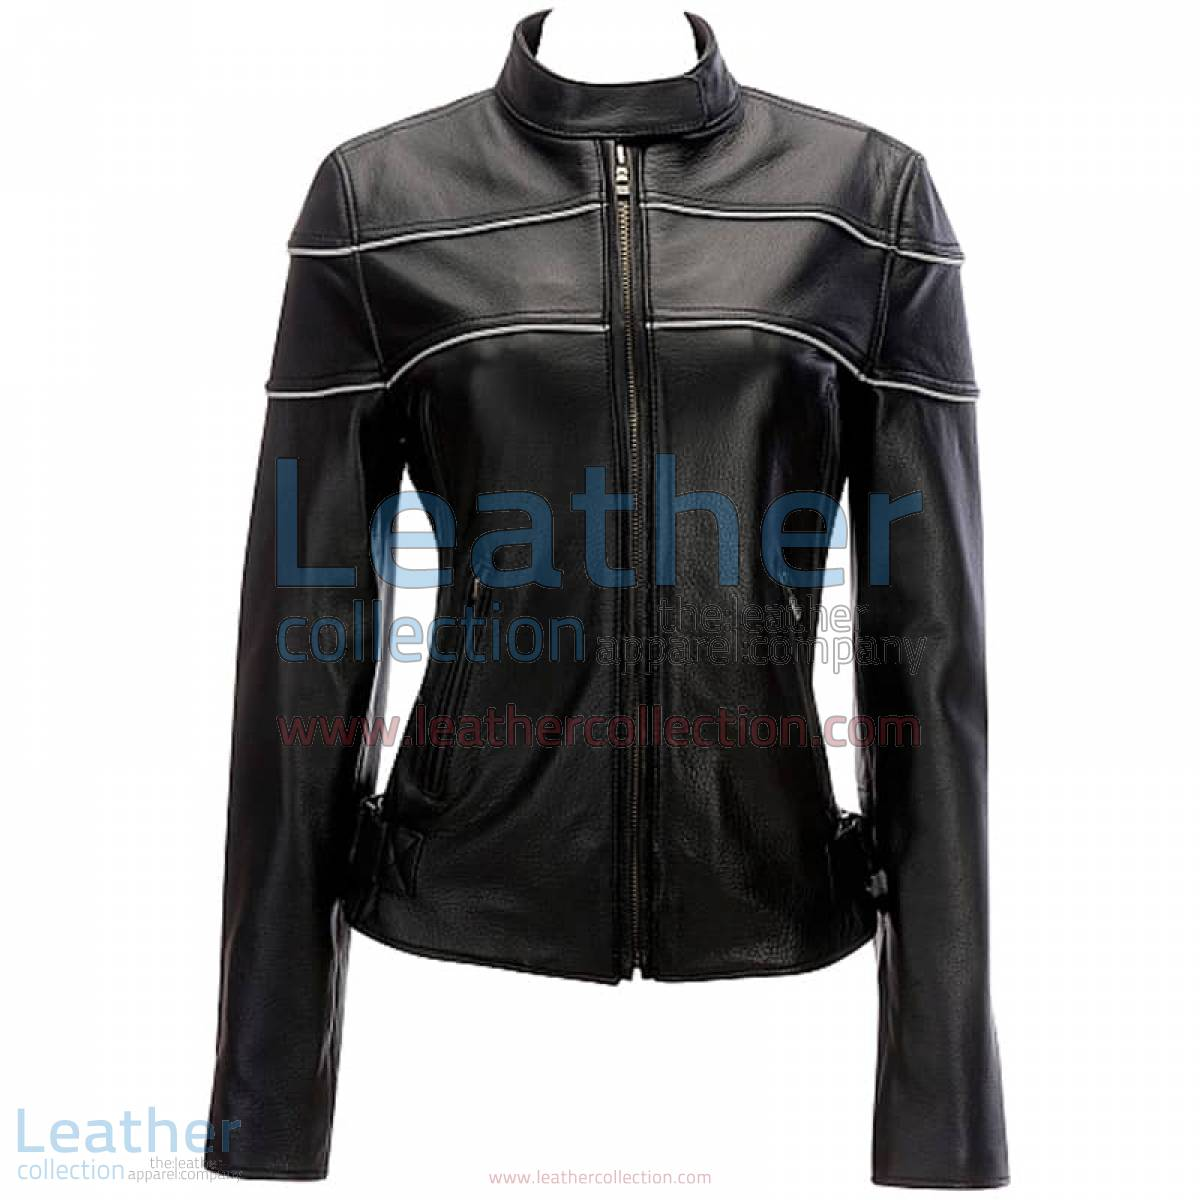 Leather Reflective Piping Jacket Black | piping jacket